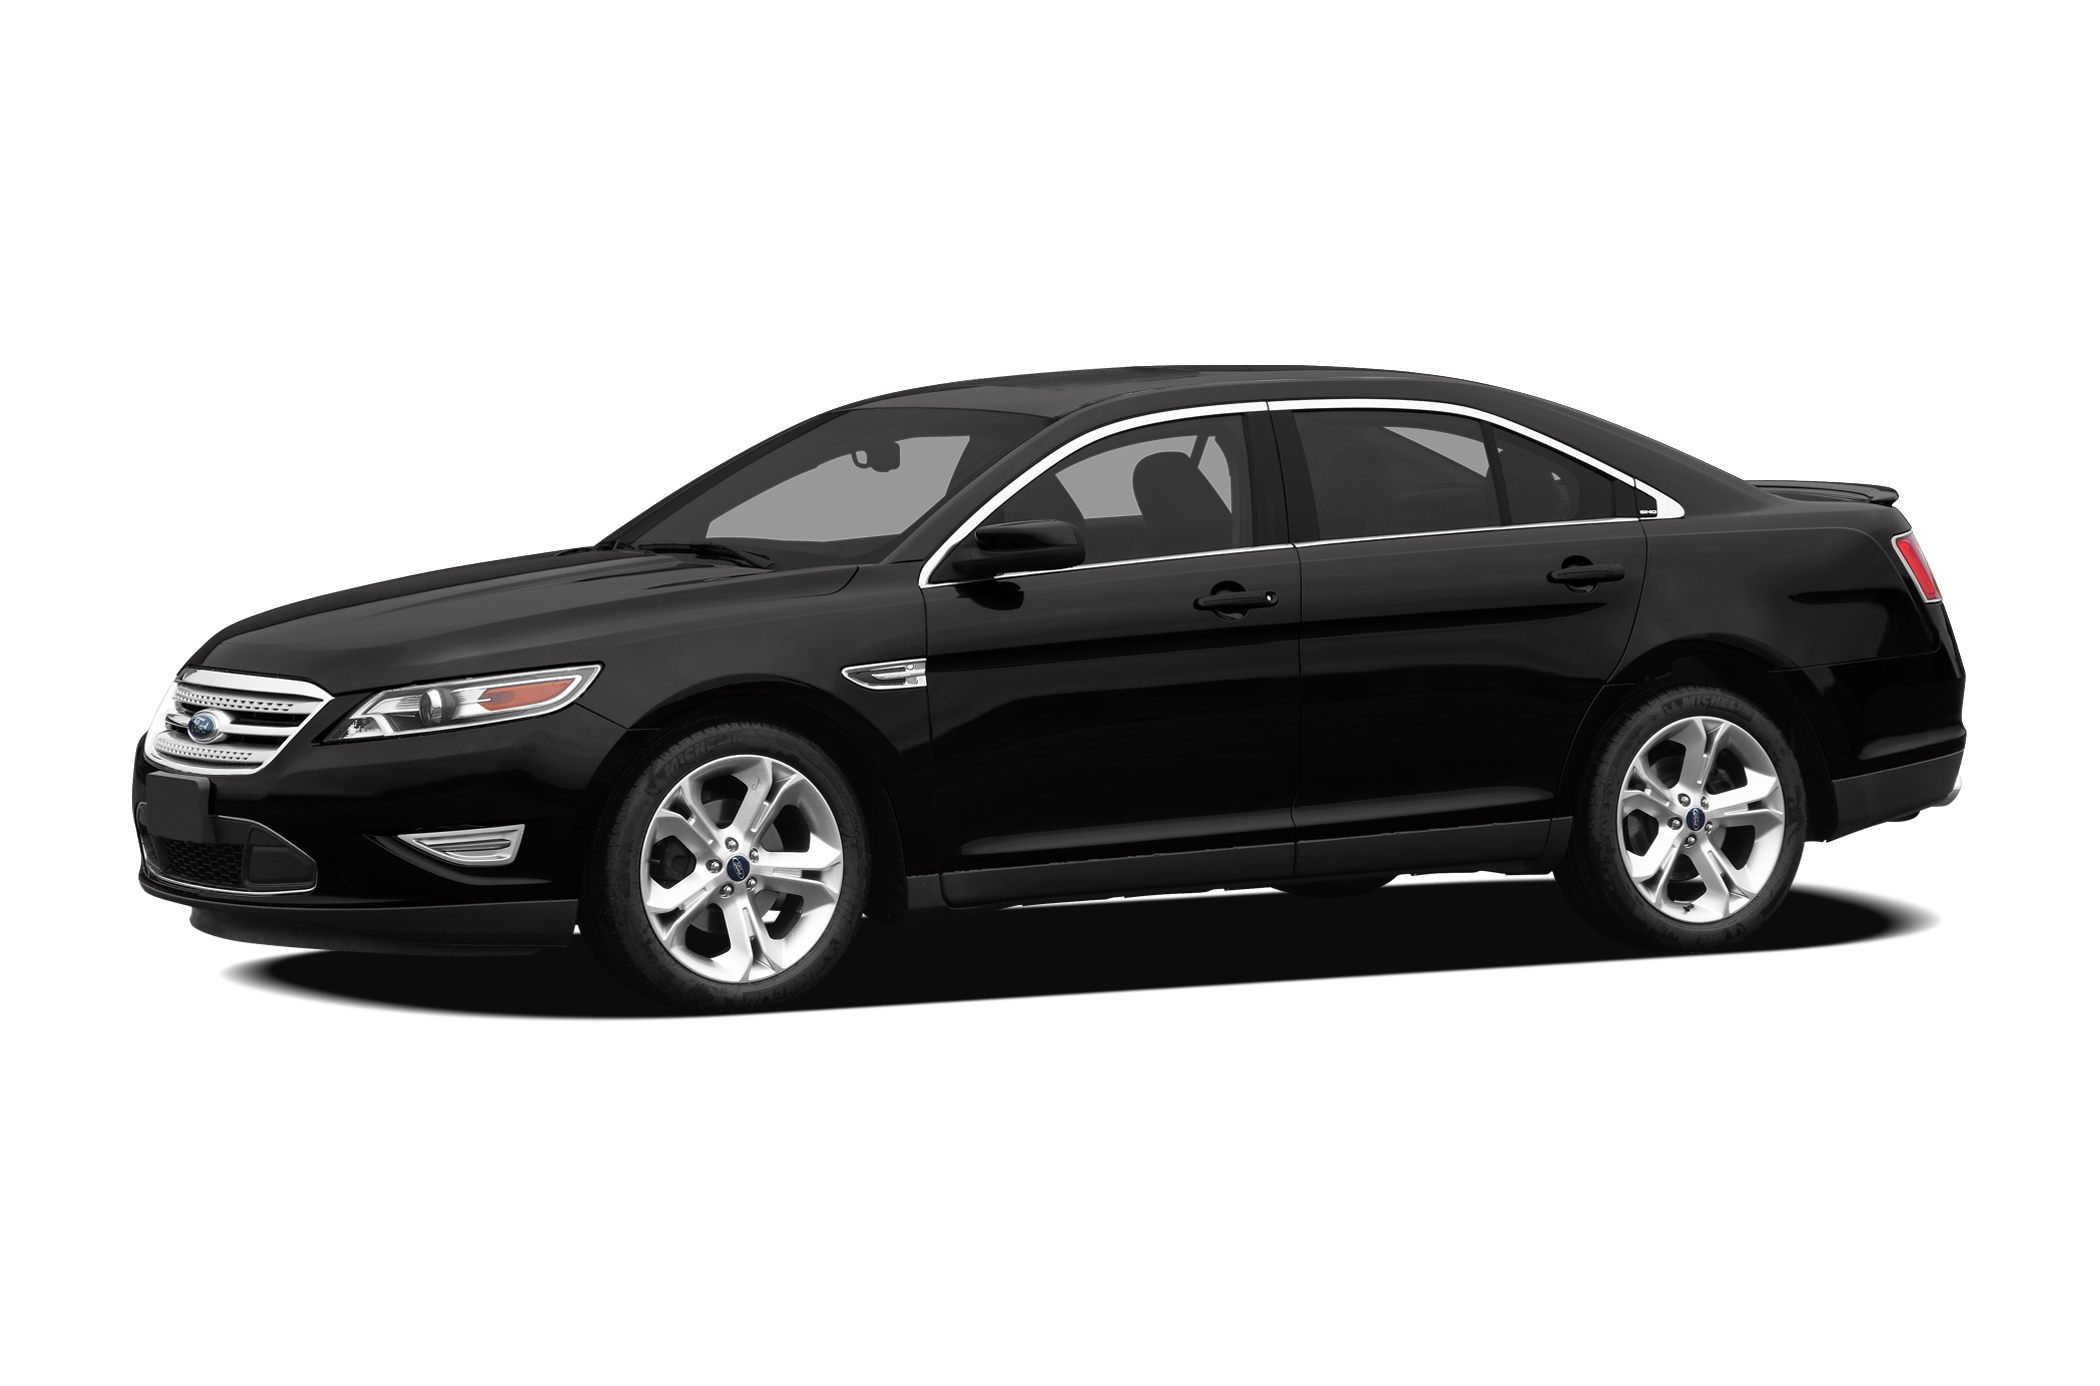 2012 Ford Taurus SHO Sedan for sale in Manheim for $26,995 with 36,270 miles.